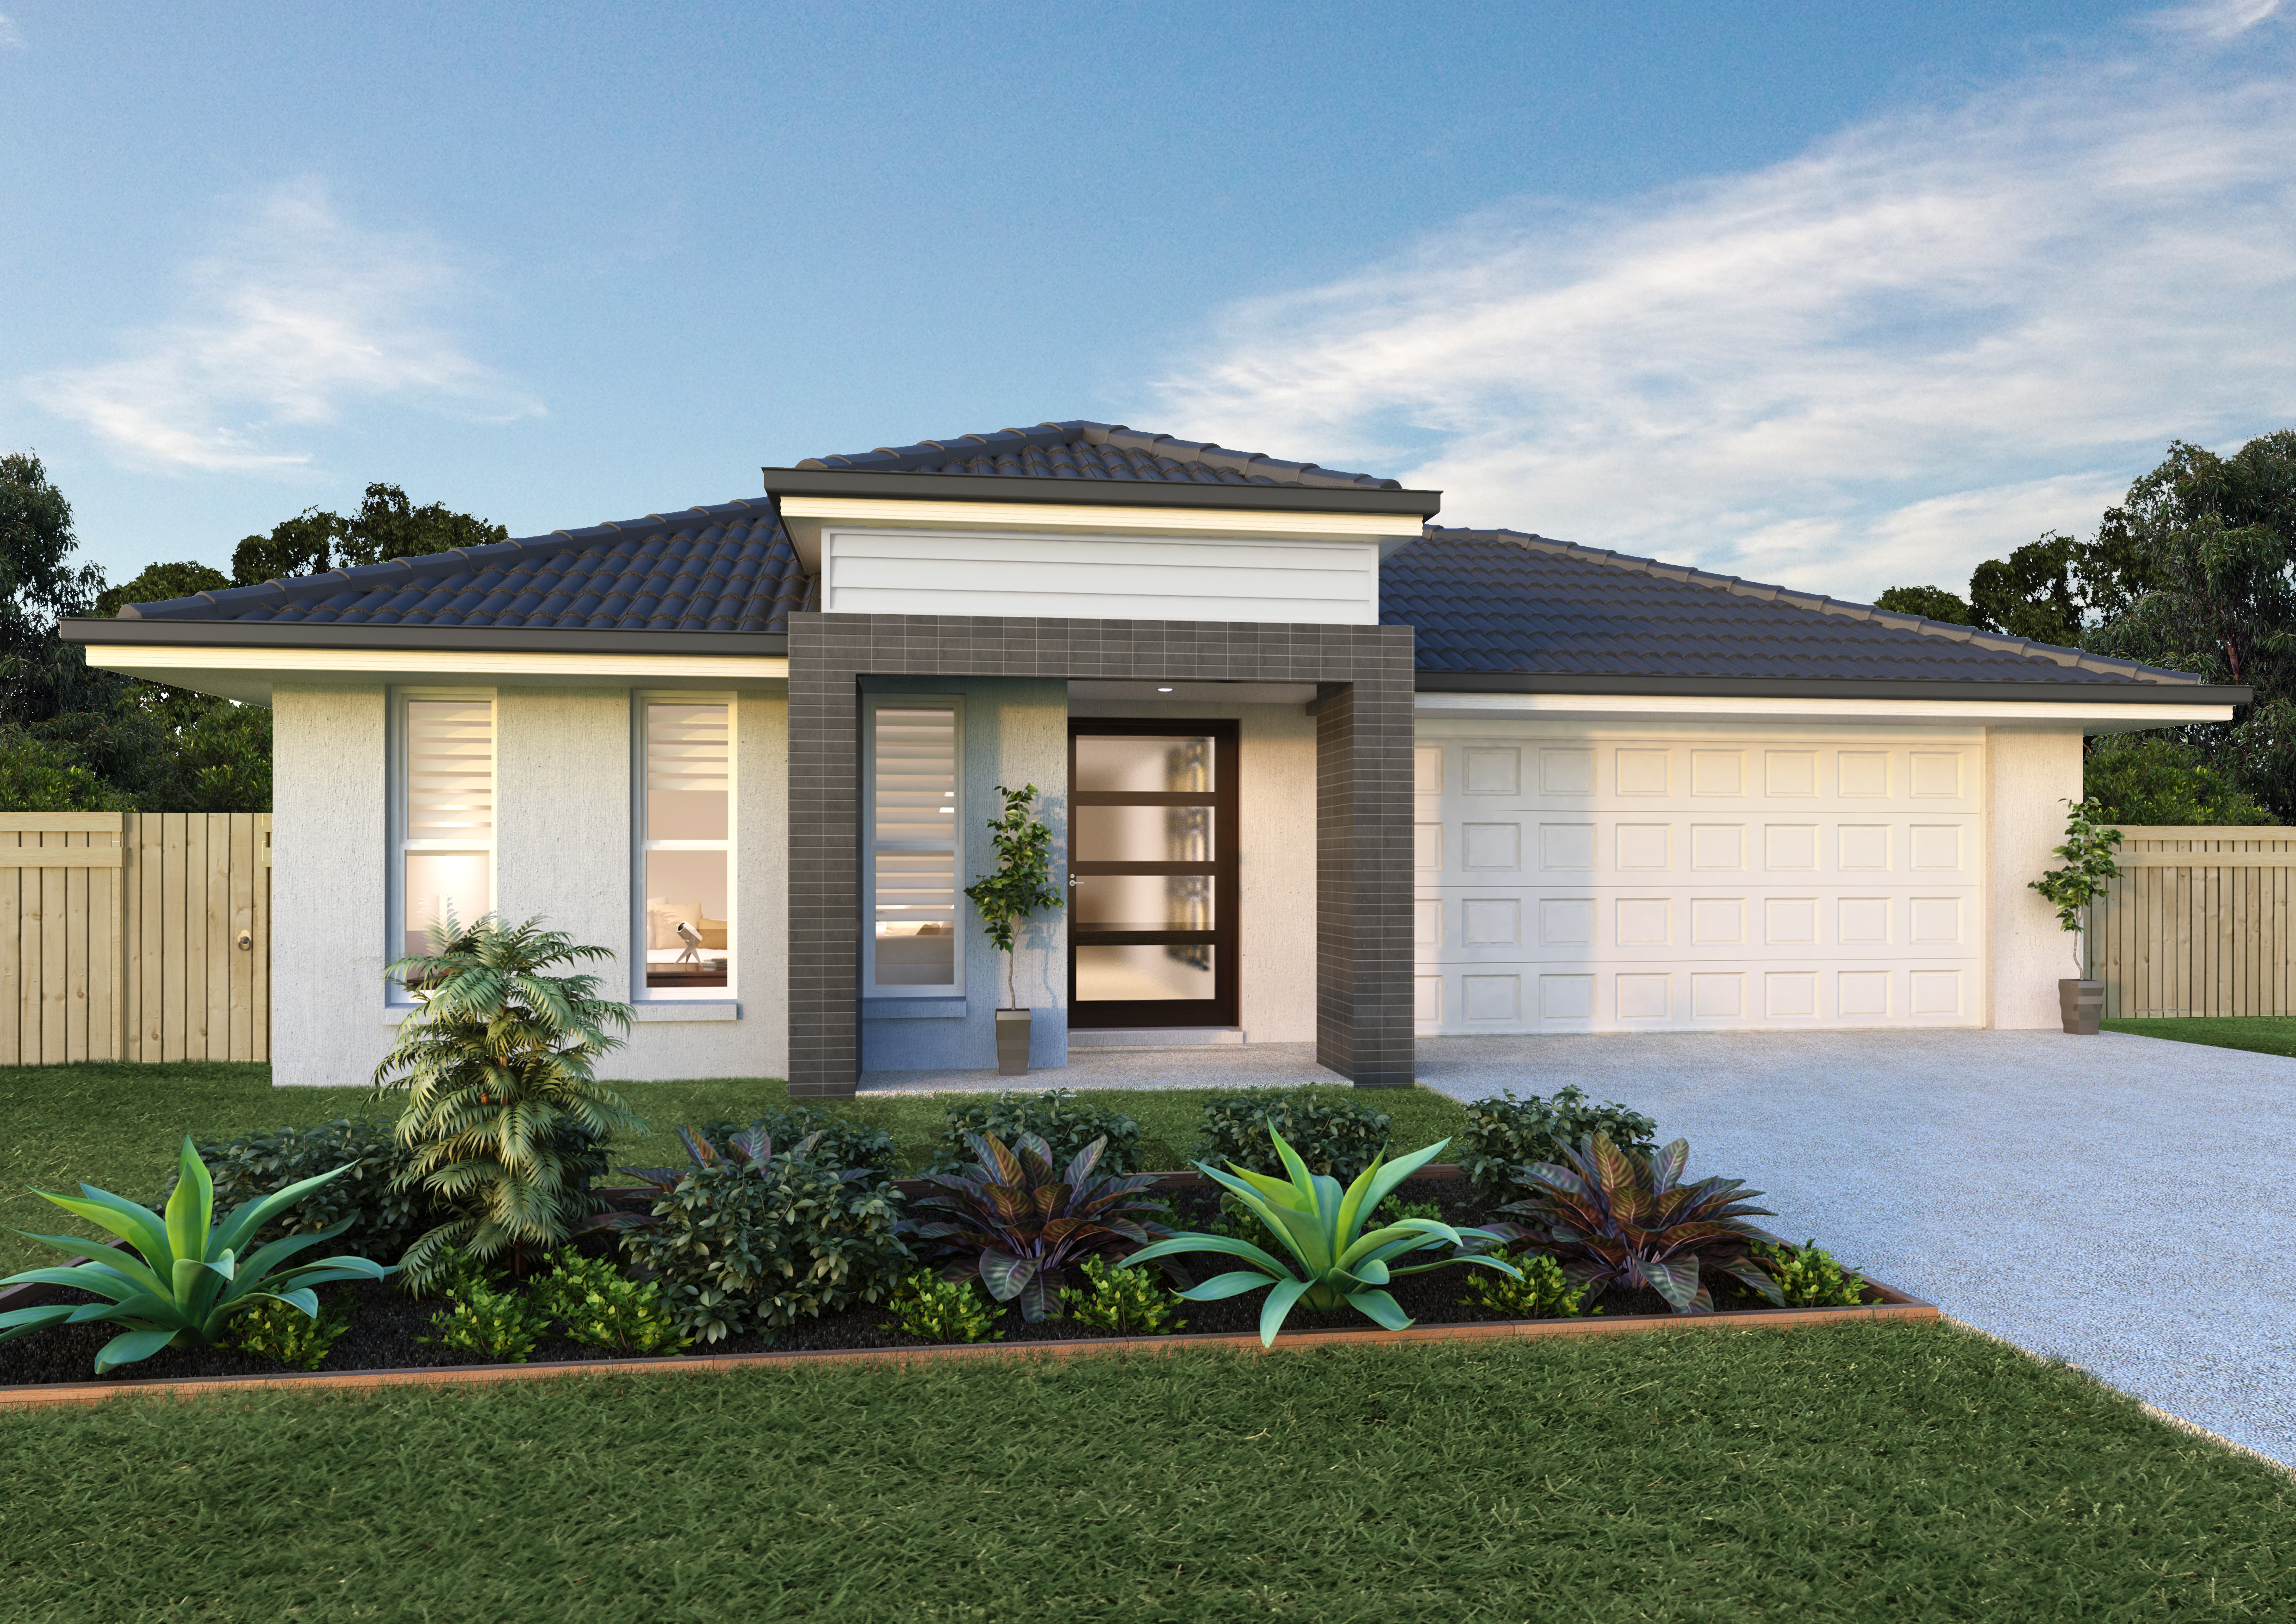 New home design avalon perry homes nsw qld for New home designs qld